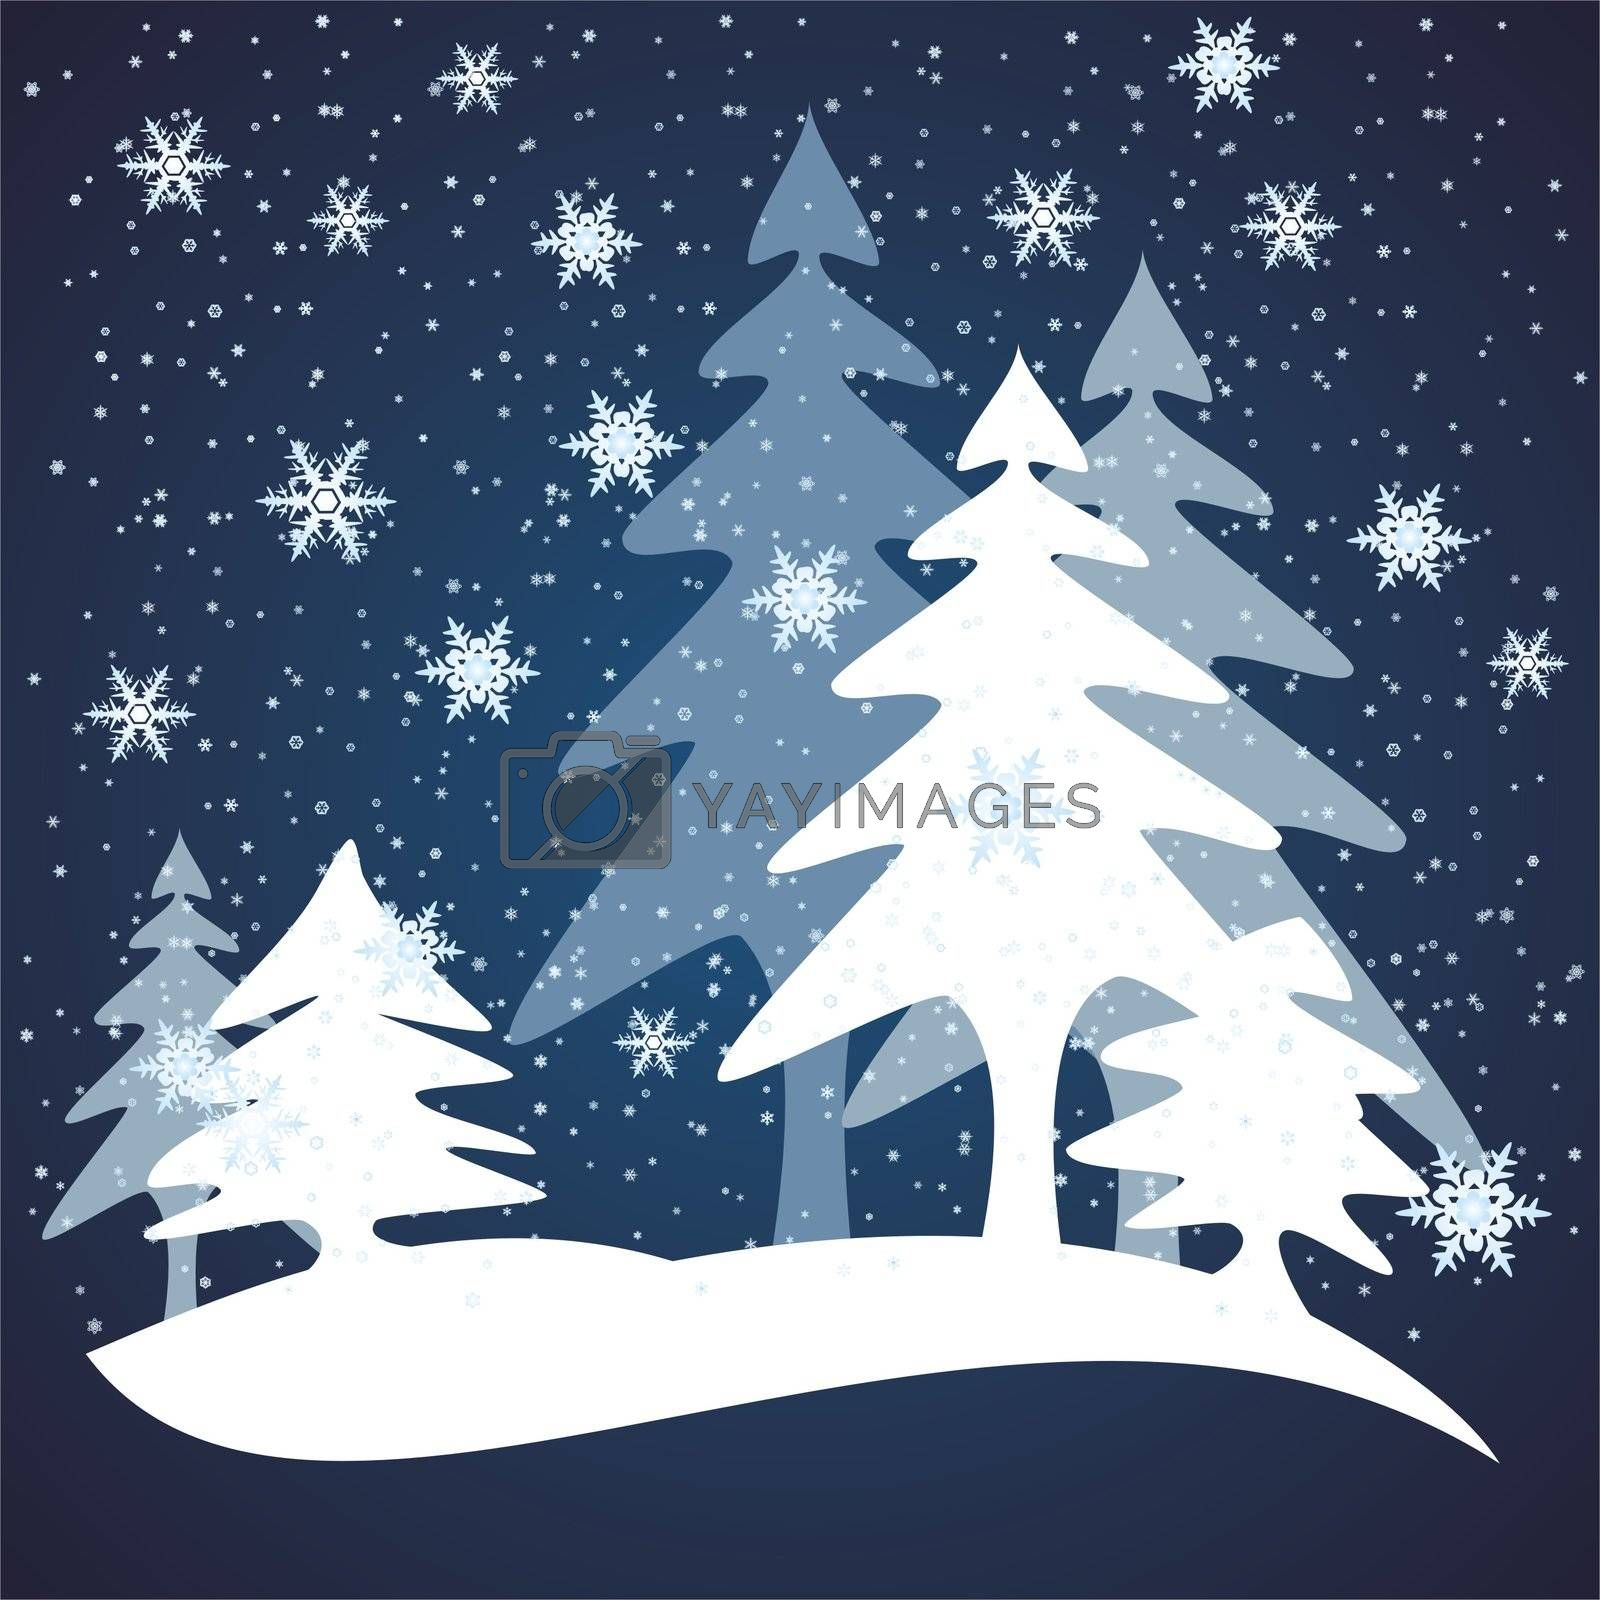 winter forest covered with snow usable as background for Christmas